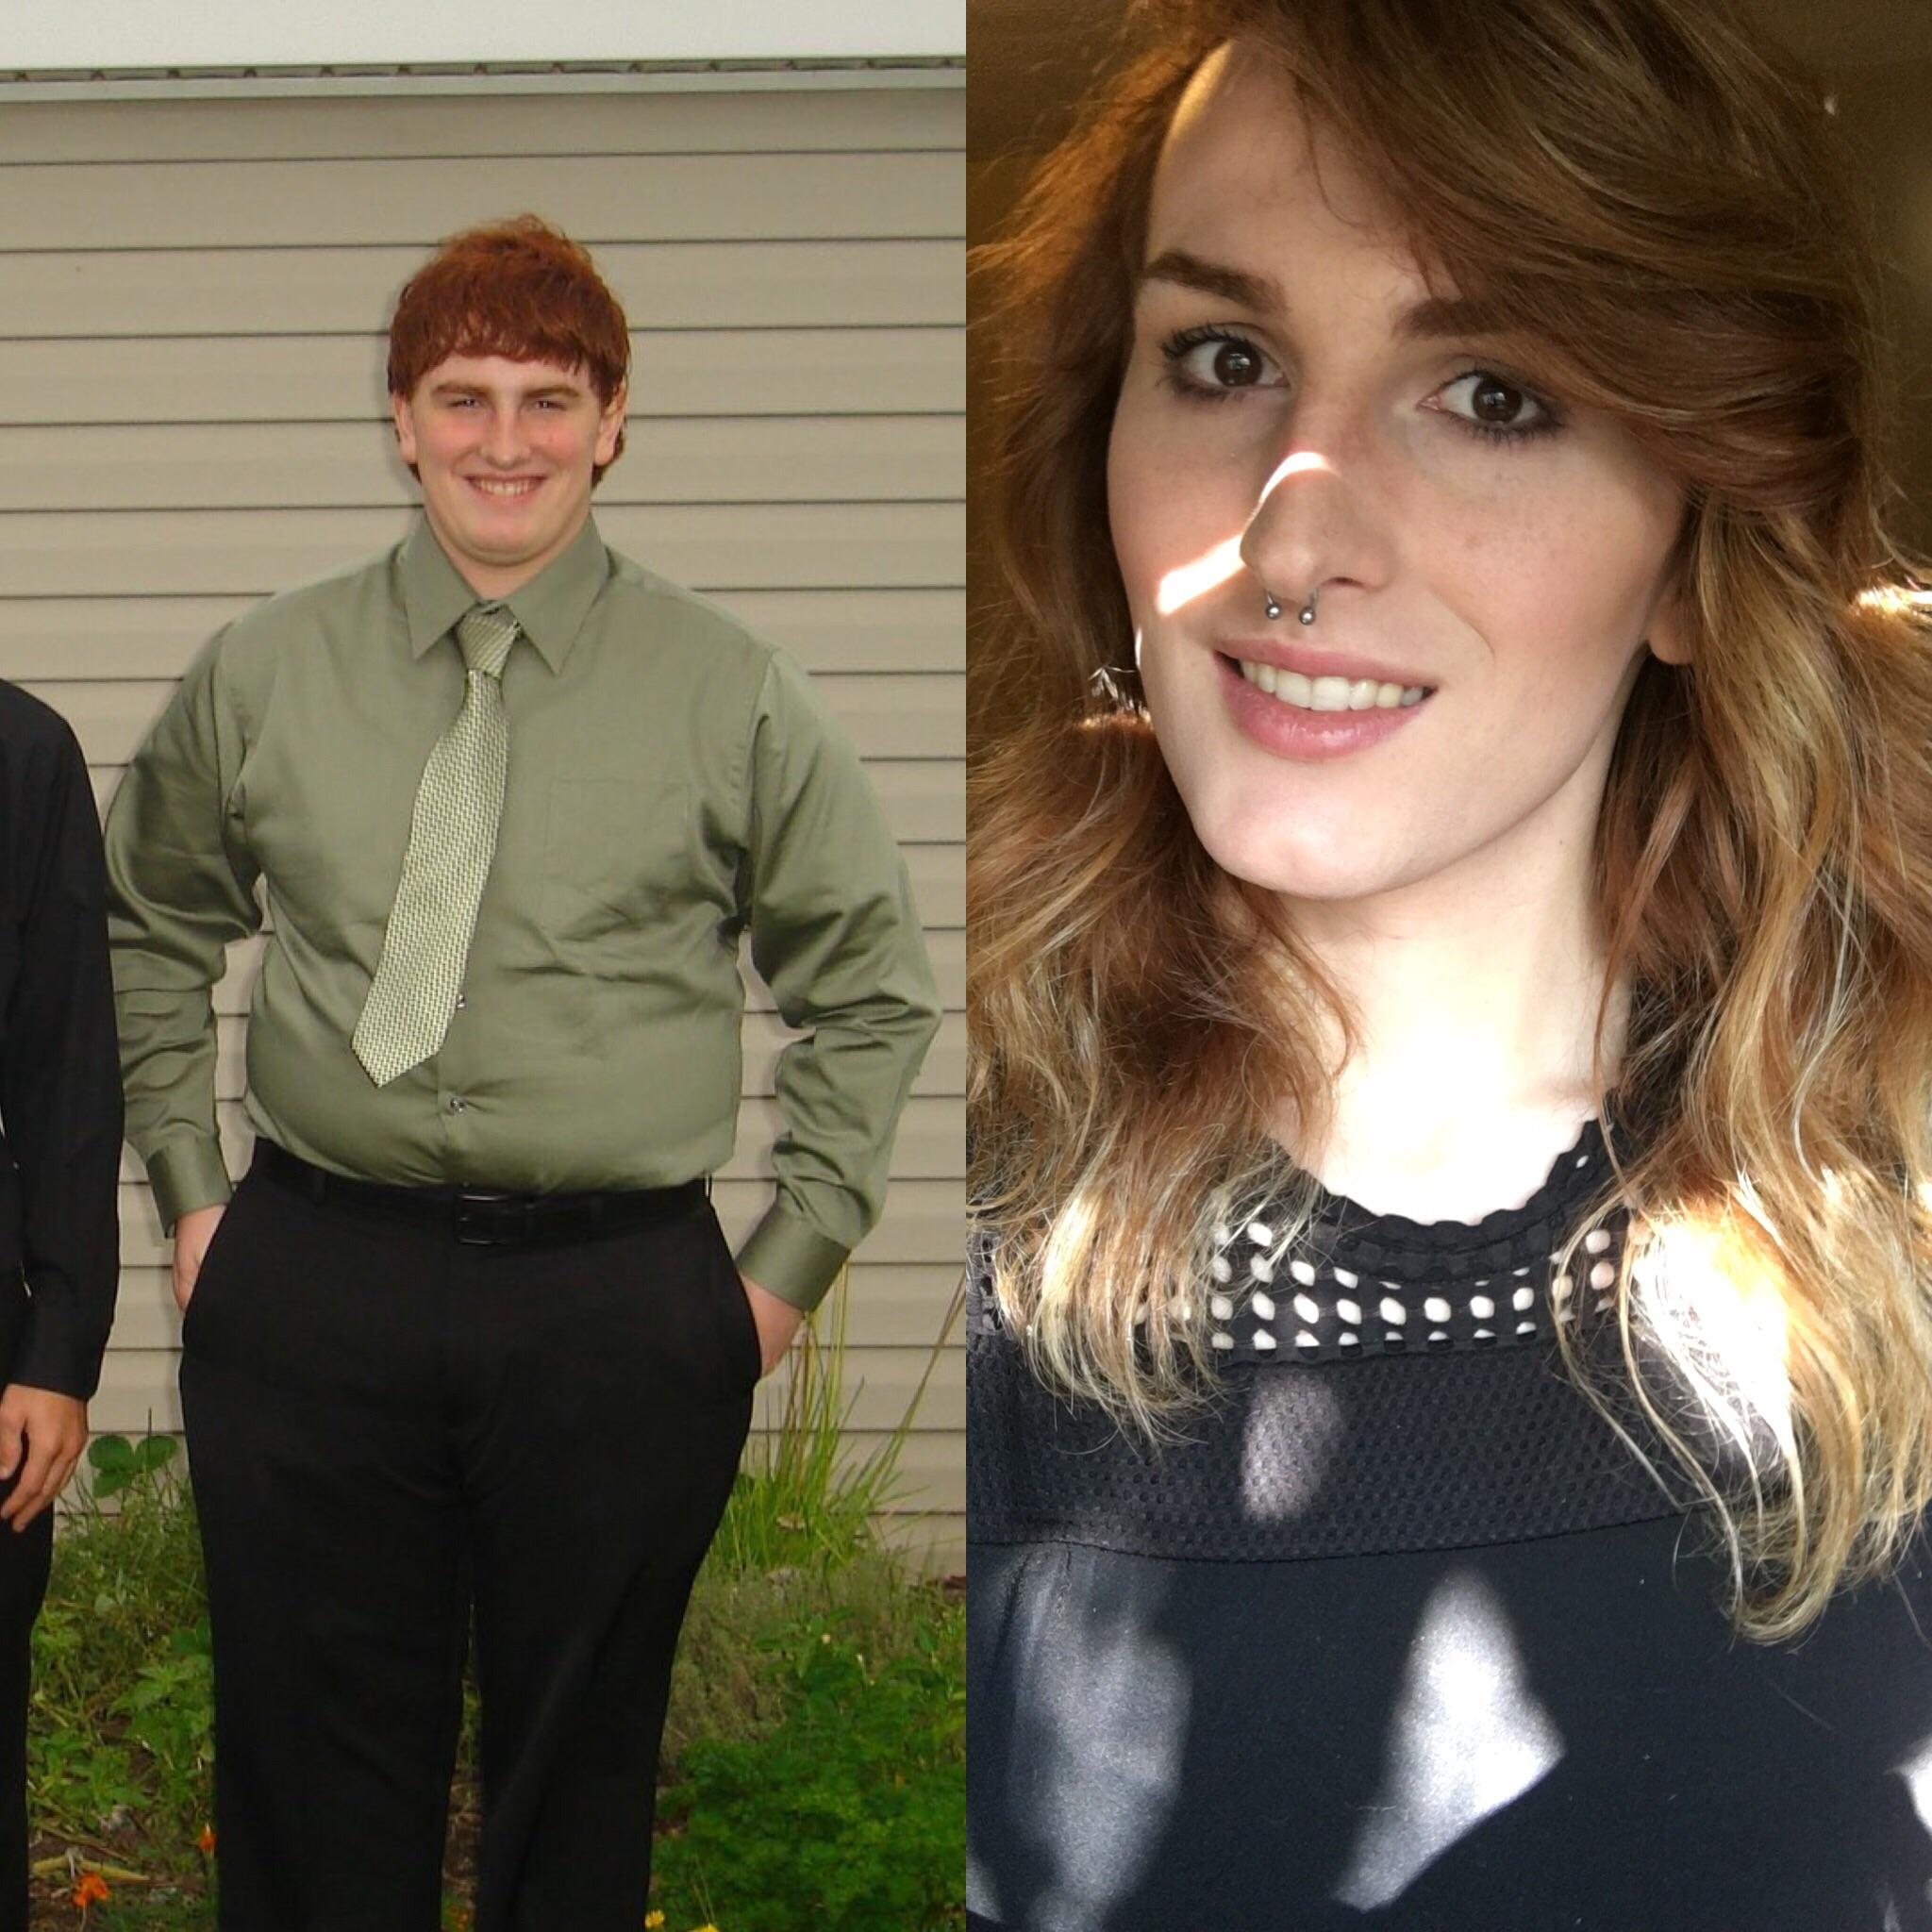 5 foot 11 Female 85 lbs Weight Loss 250 lbs to 165 lbs